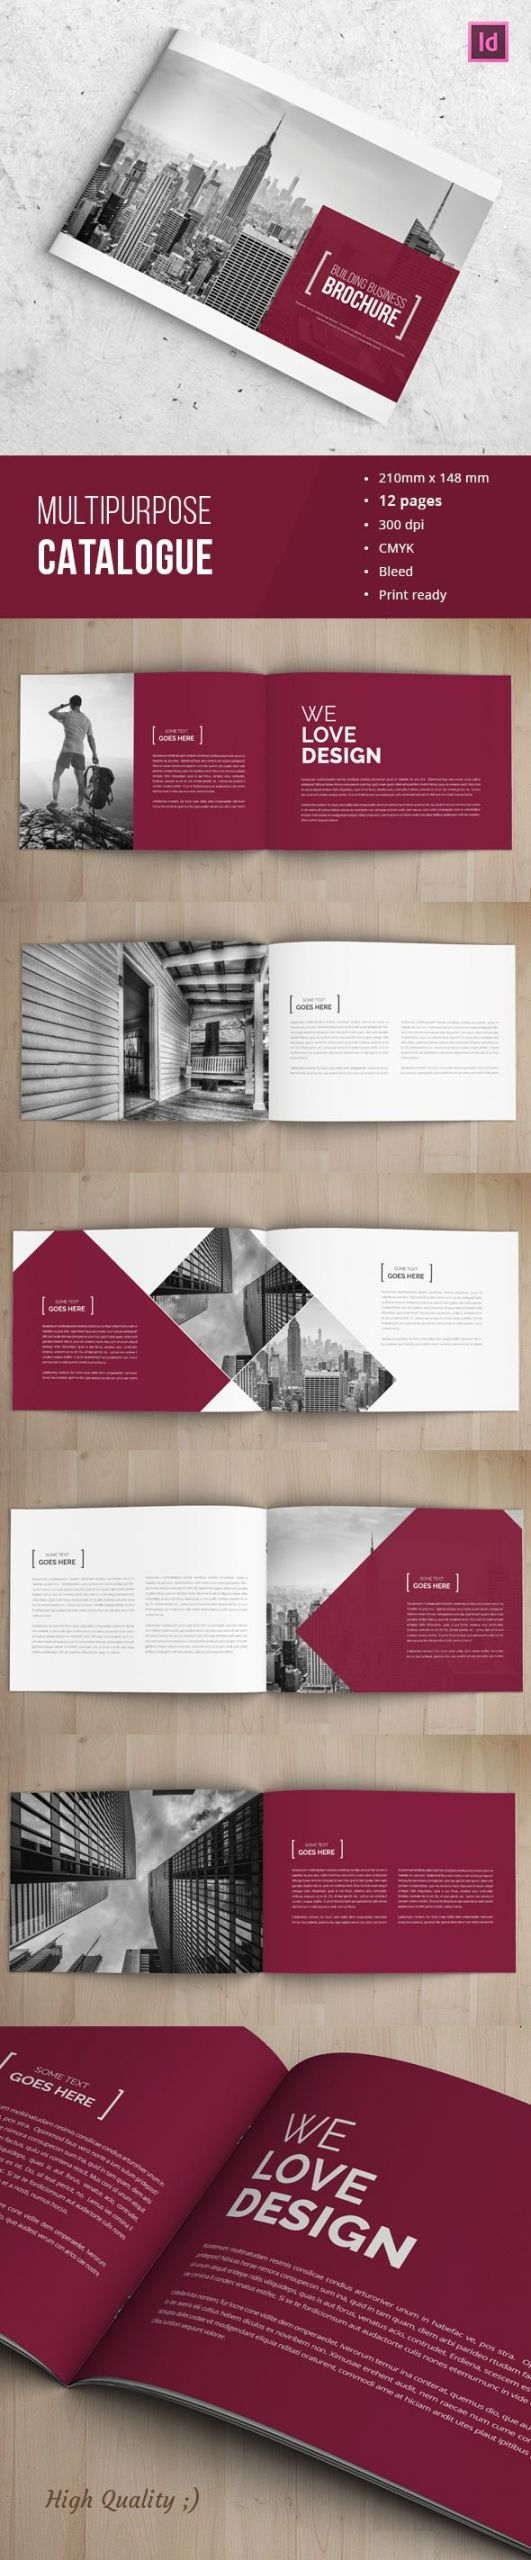 c15d230d3e7c1cd8412d019b00cea860 catalogue layout design catalogue